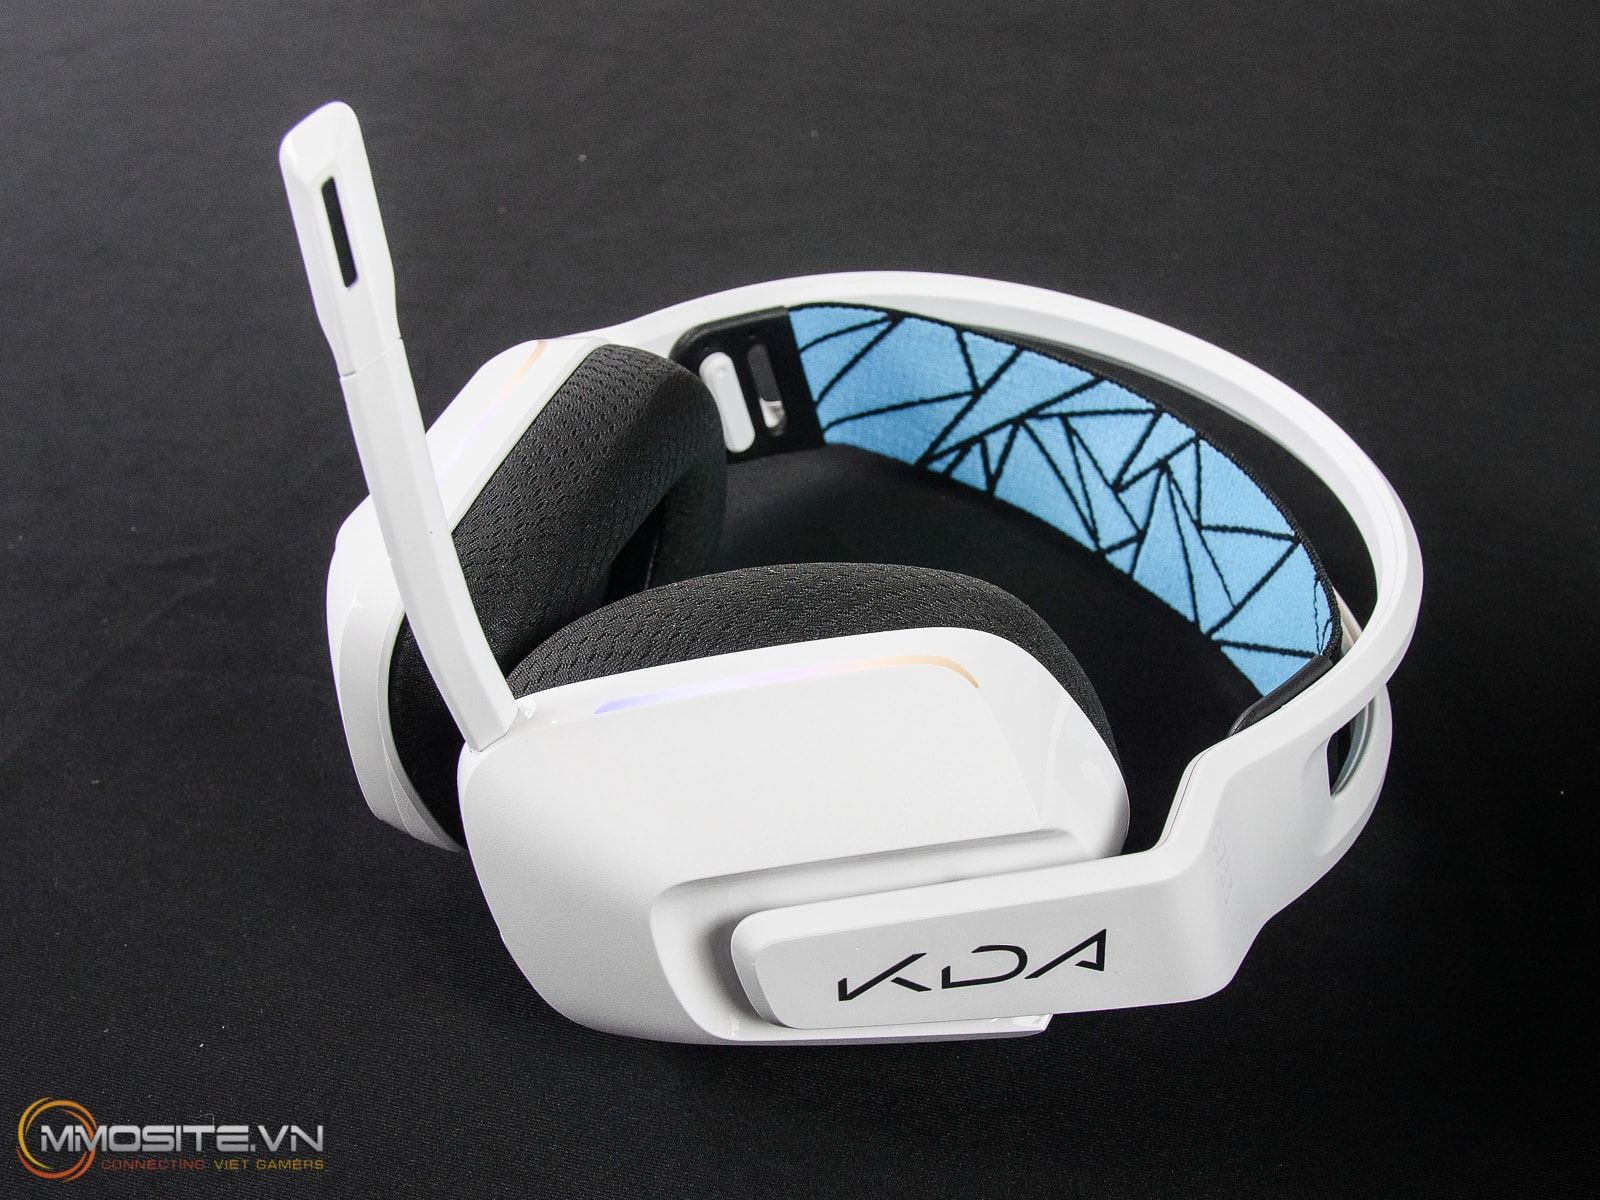 https://www.mmosite.vn/logitech-extreme-3d-pro-hang-thua-cho-game-thu-thich-lai-may-bay/